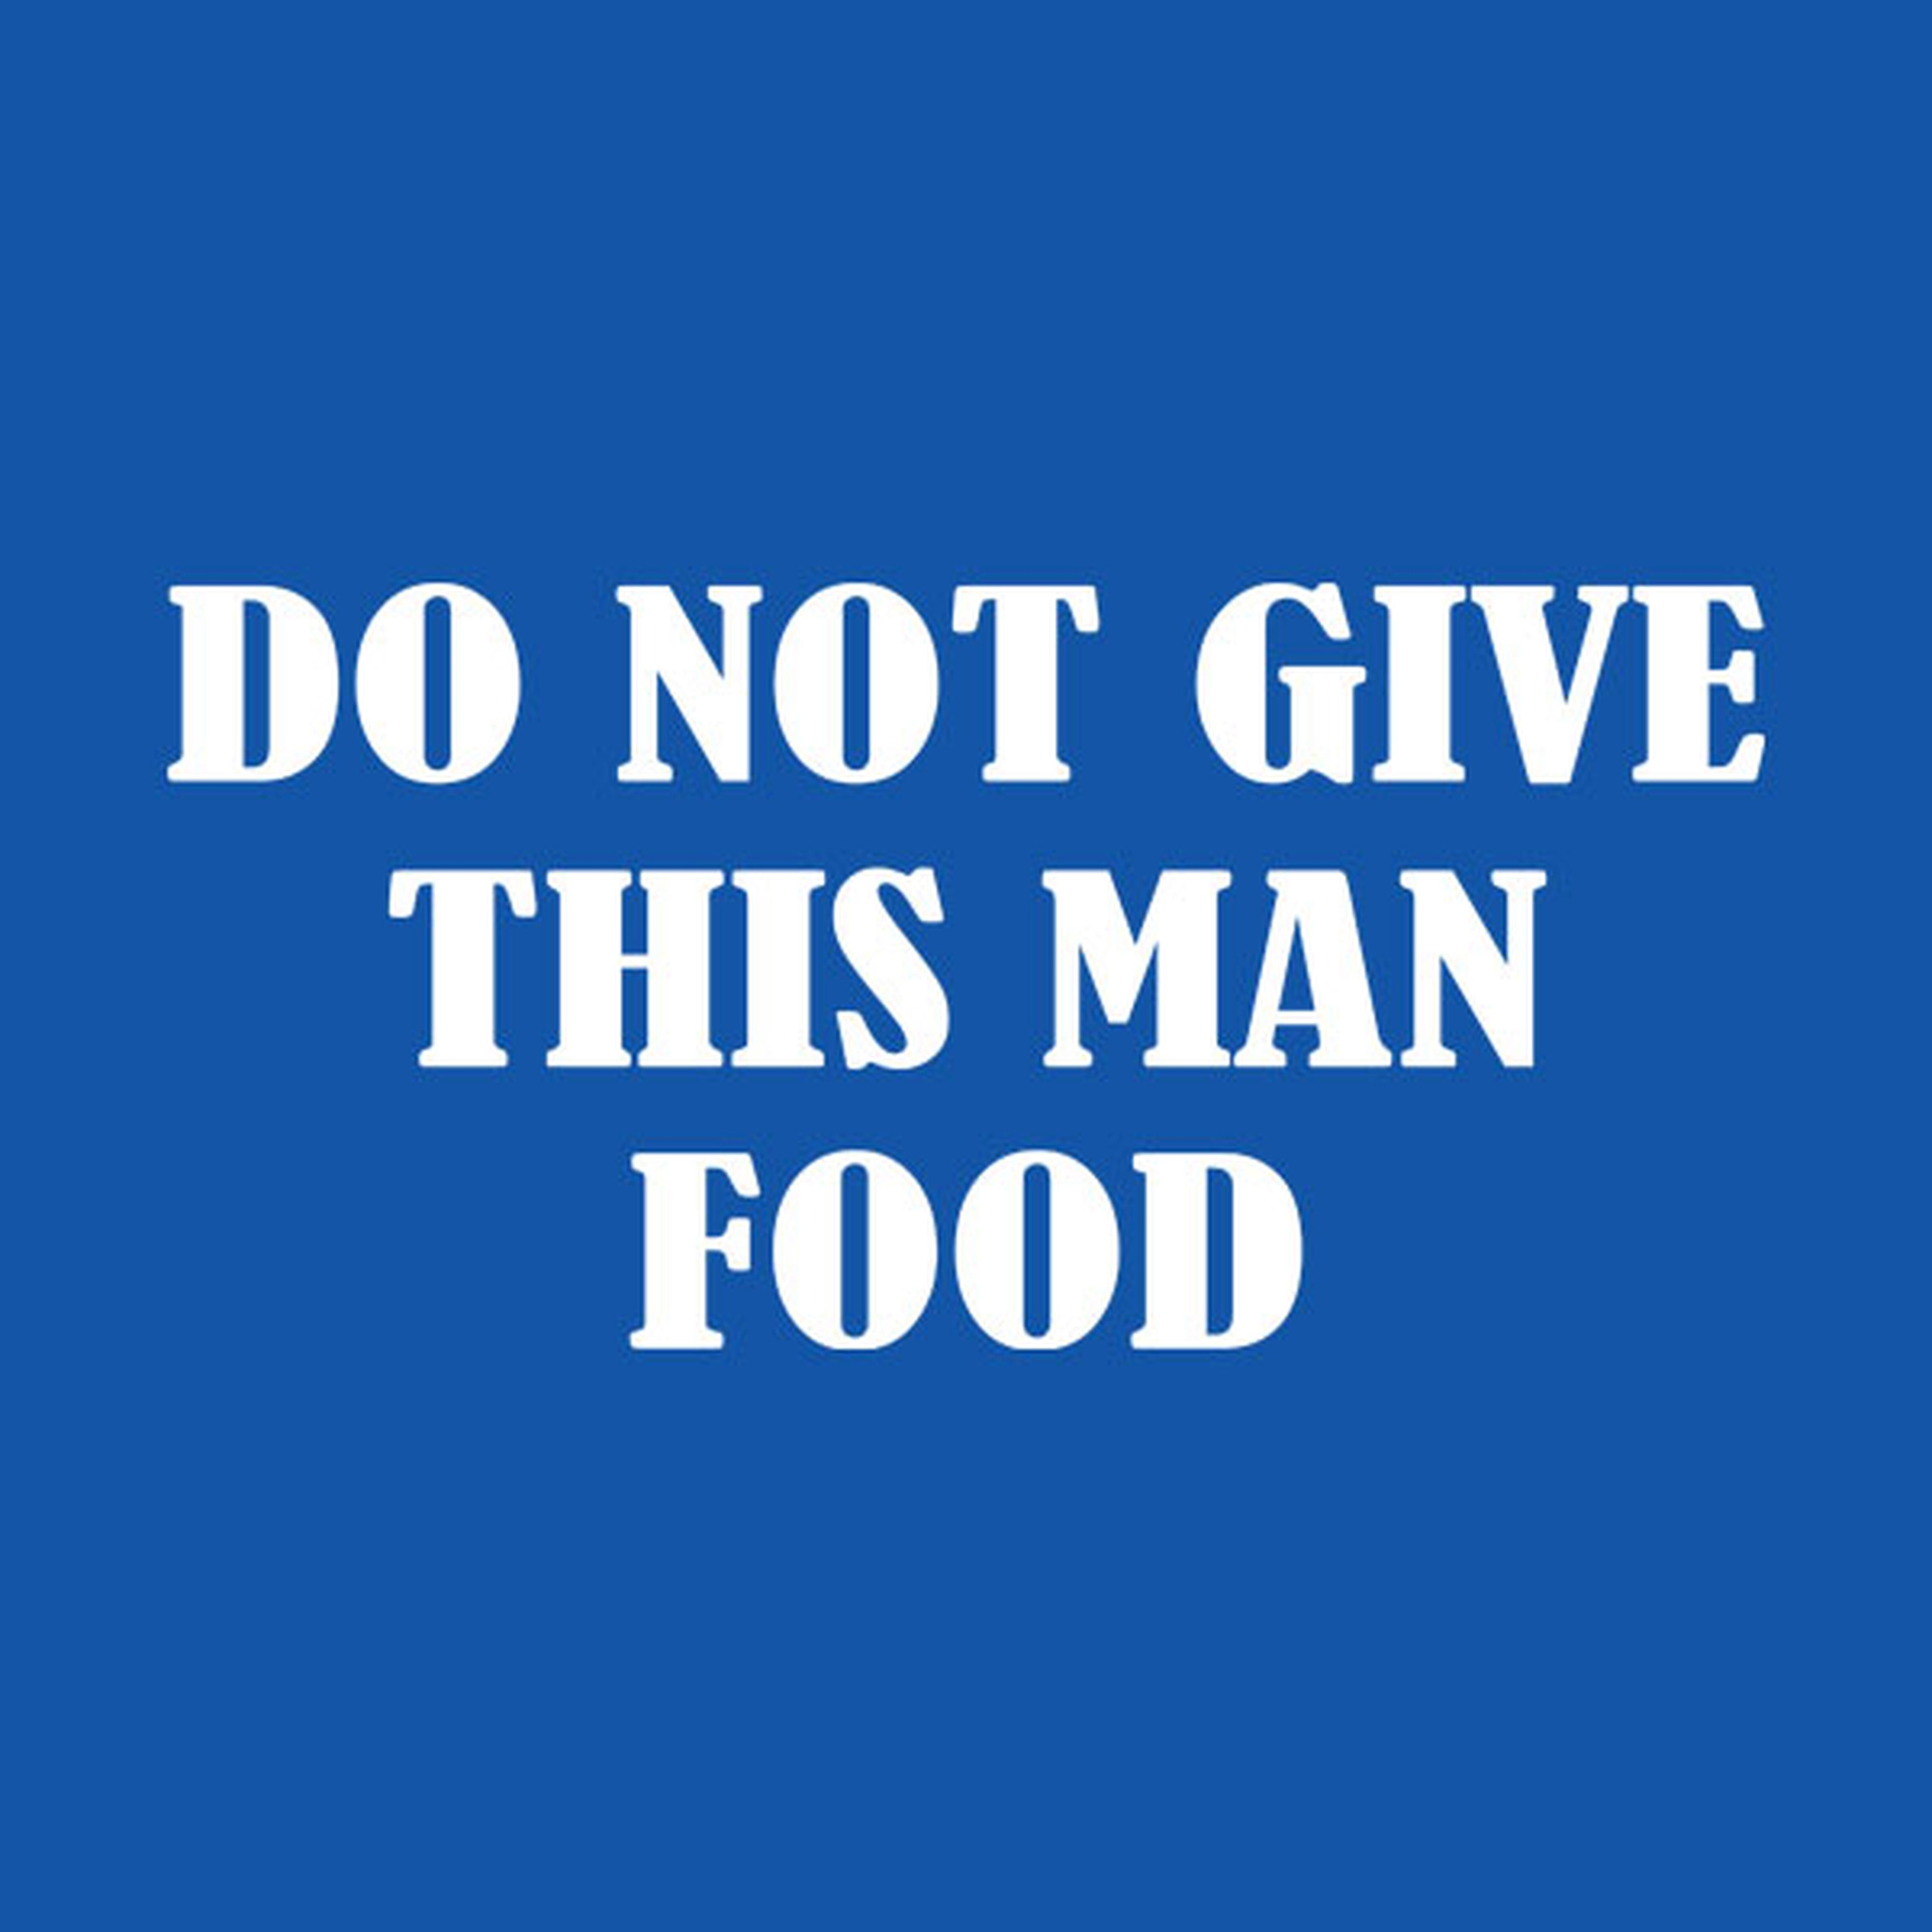 Do not give this man food - T-shirt